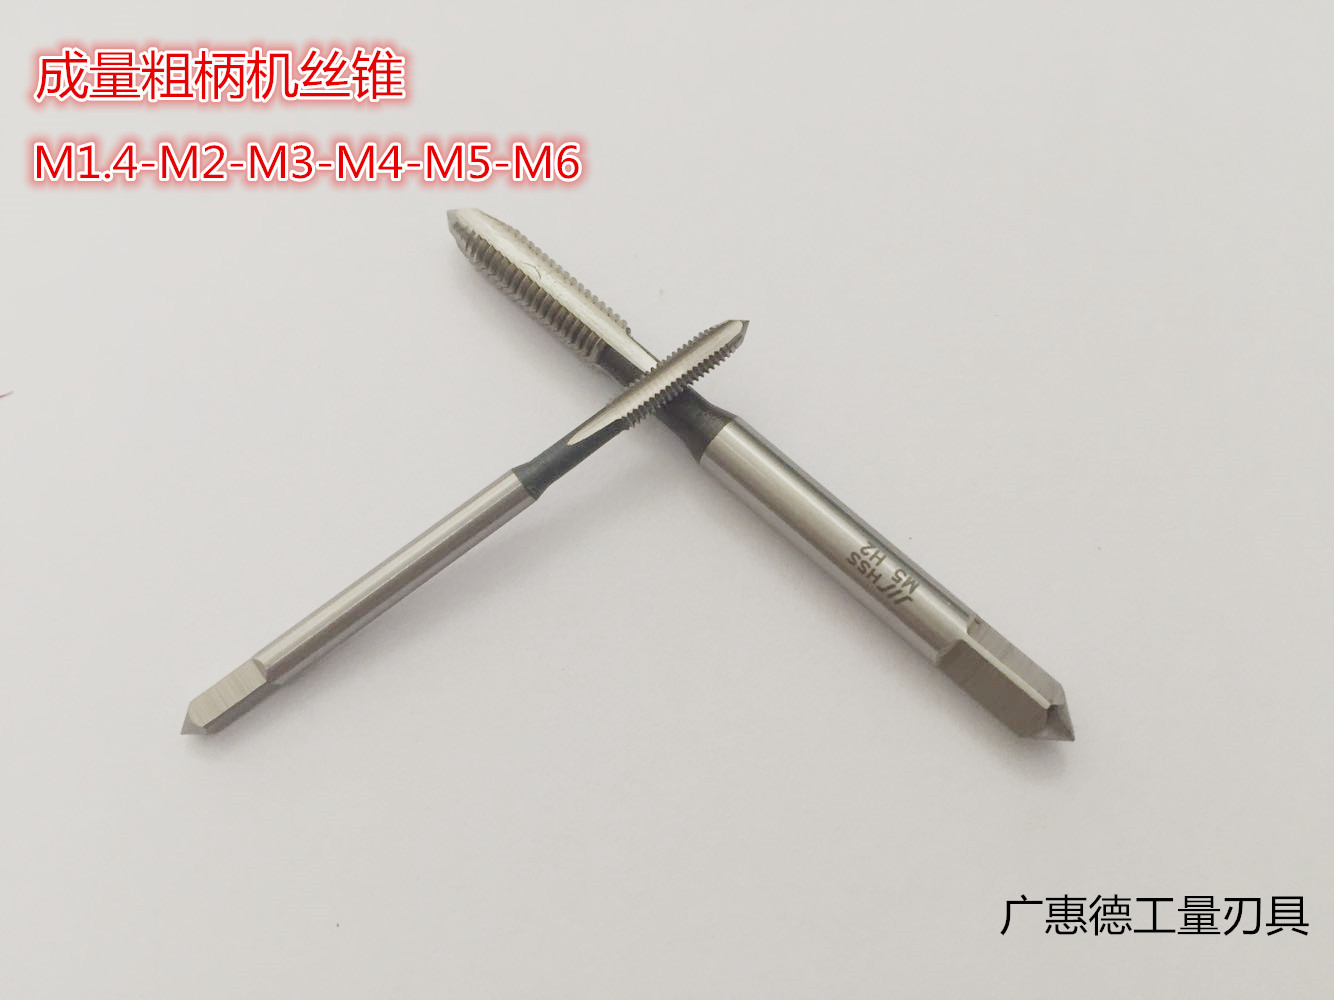 The amount of thick handle machine taps high speed steel machine screw tap straight slot machine M1.4-M2-M3-M4-M5-M6